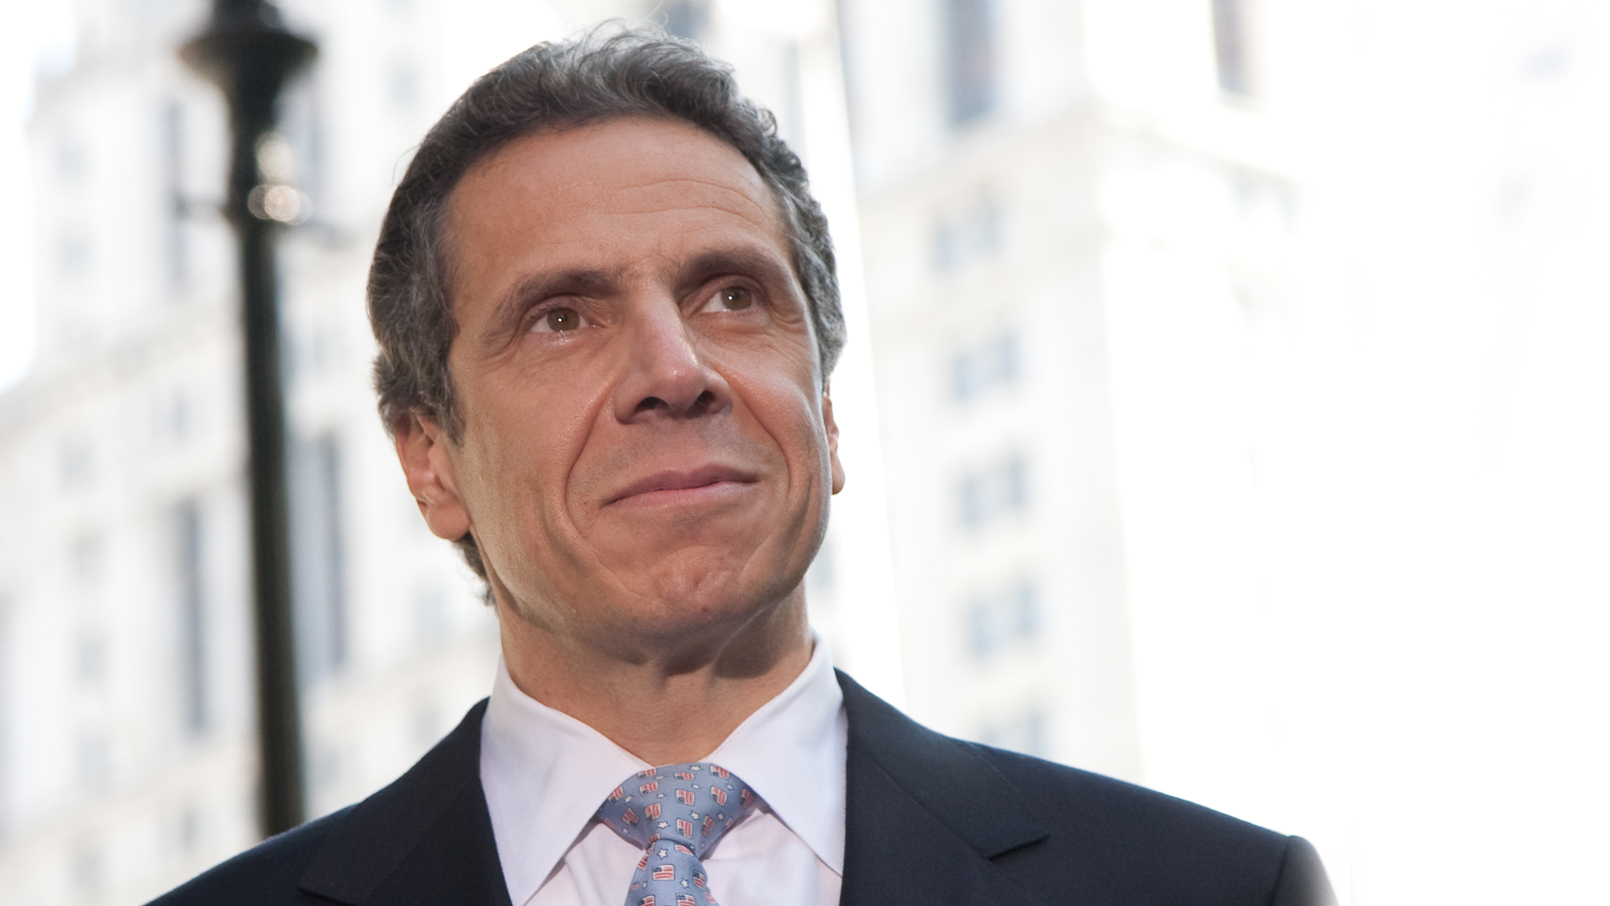 NY Gov. Cuomo Announces 2021 Marijuana Legalization Push